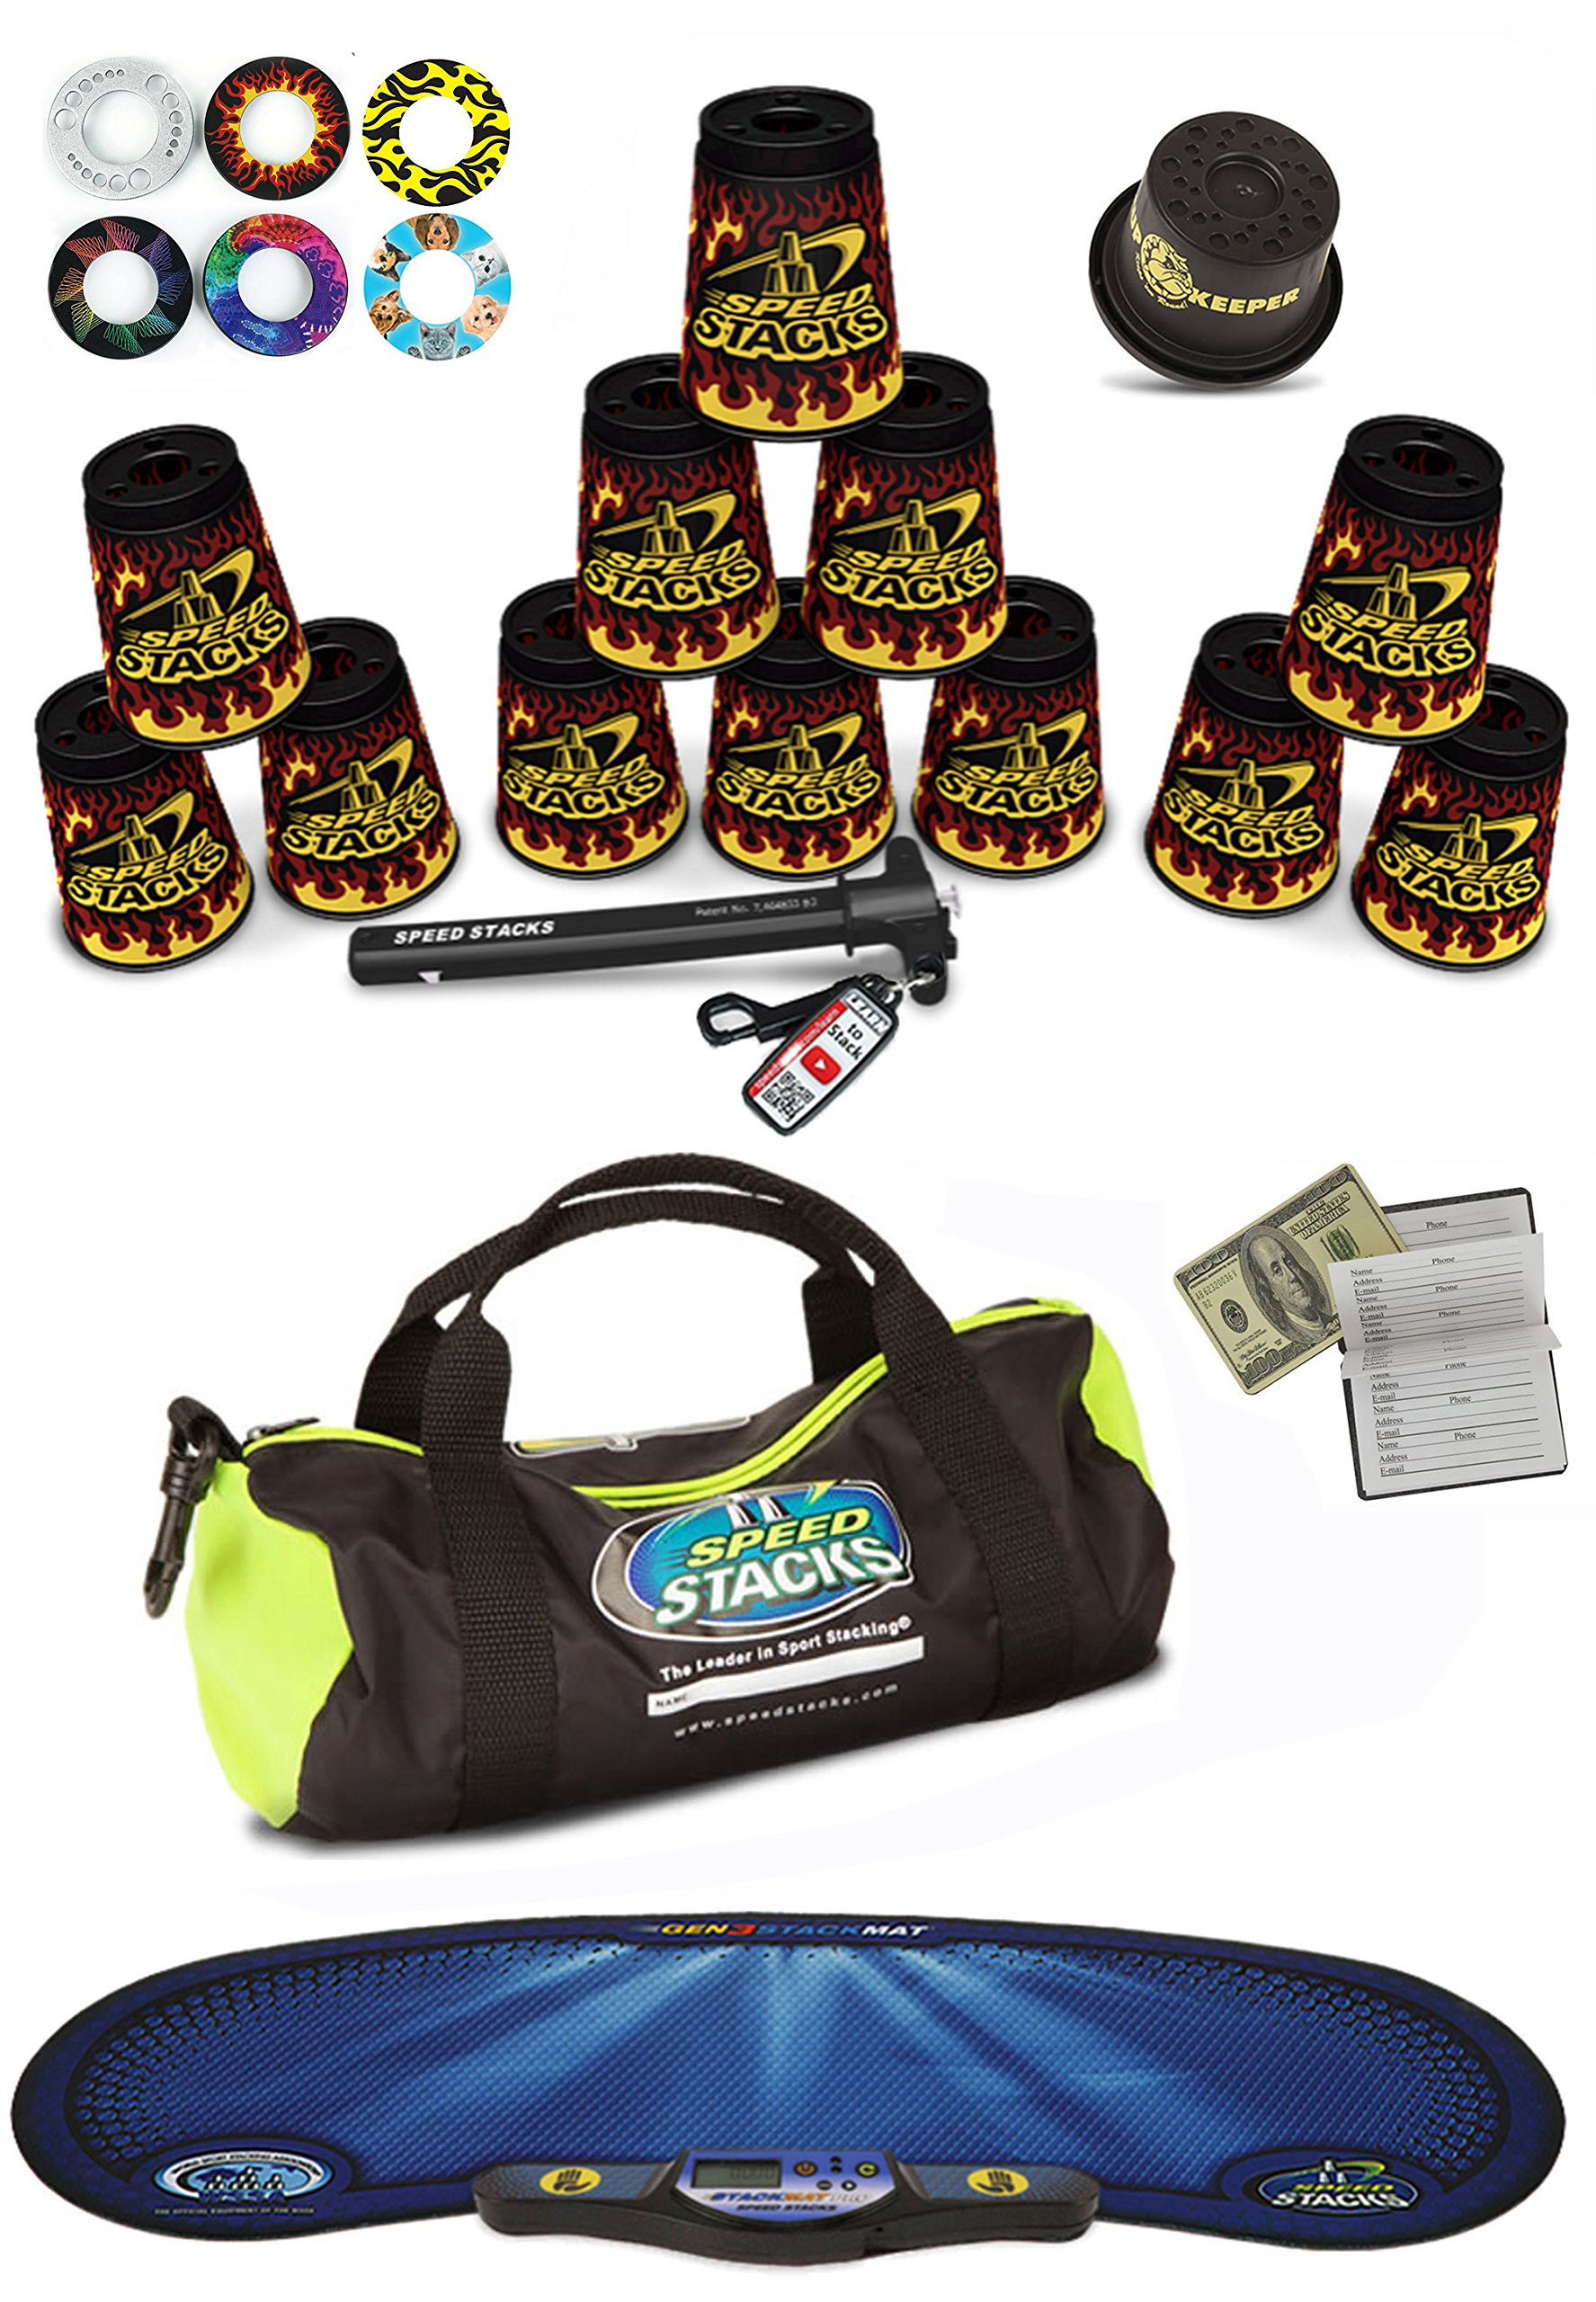 Speed Stacks Custom Combo Set - The Works: 12 BLACK FLAME 4'' Cups, Cup Keeper, Quick Release Stem, Pro Timer, Gen 3 Mat, 6 Snap Tops, Gear Bag & $100 Design Magnetic Credit Card Size Address Book